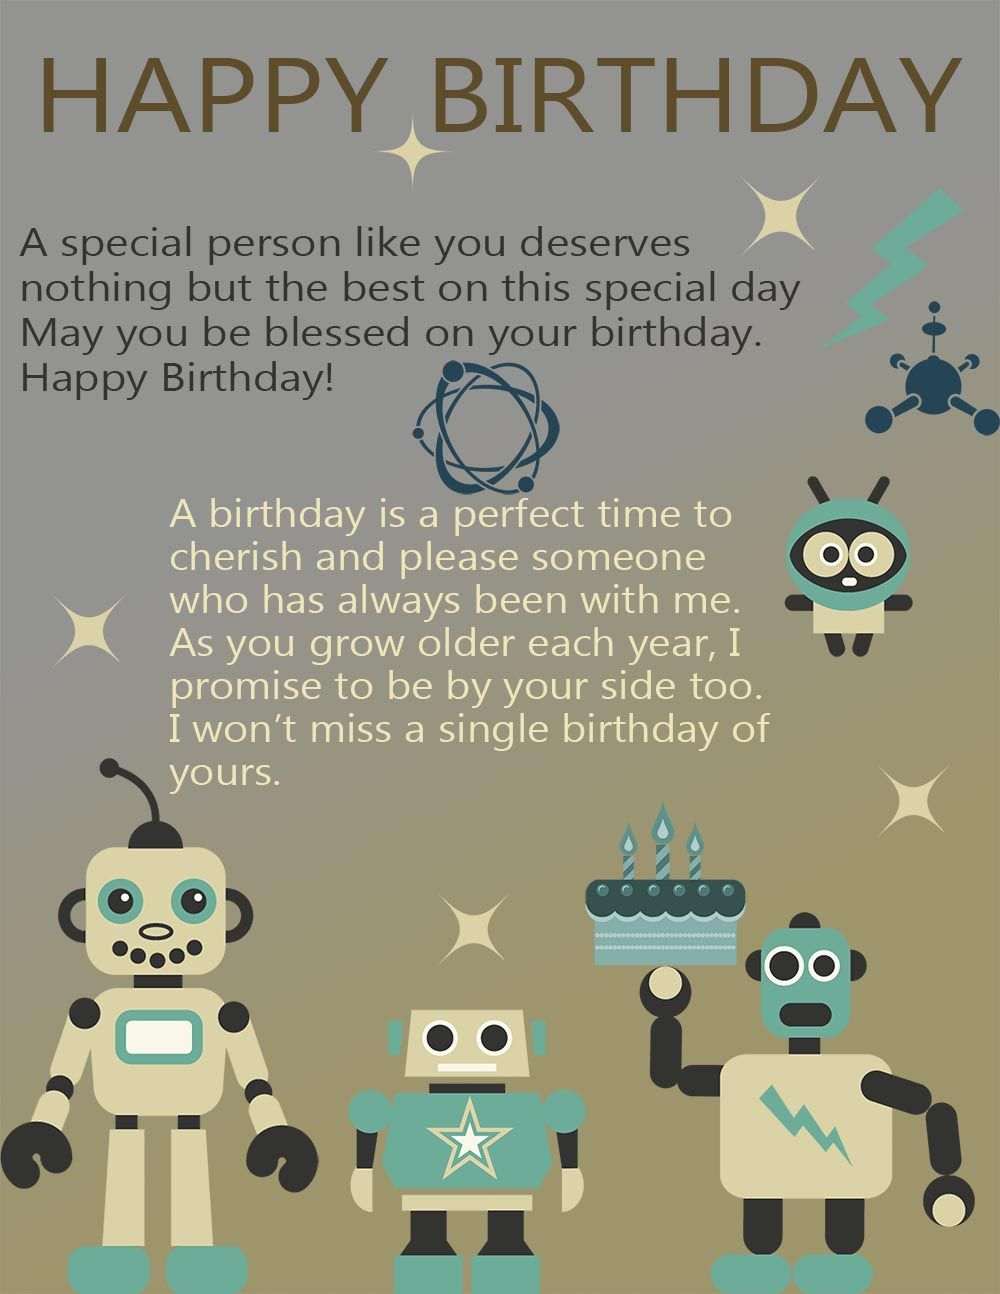 Happy birthday e card free my birthday pinterest happy happy birthday e card free bookmarktalkfo